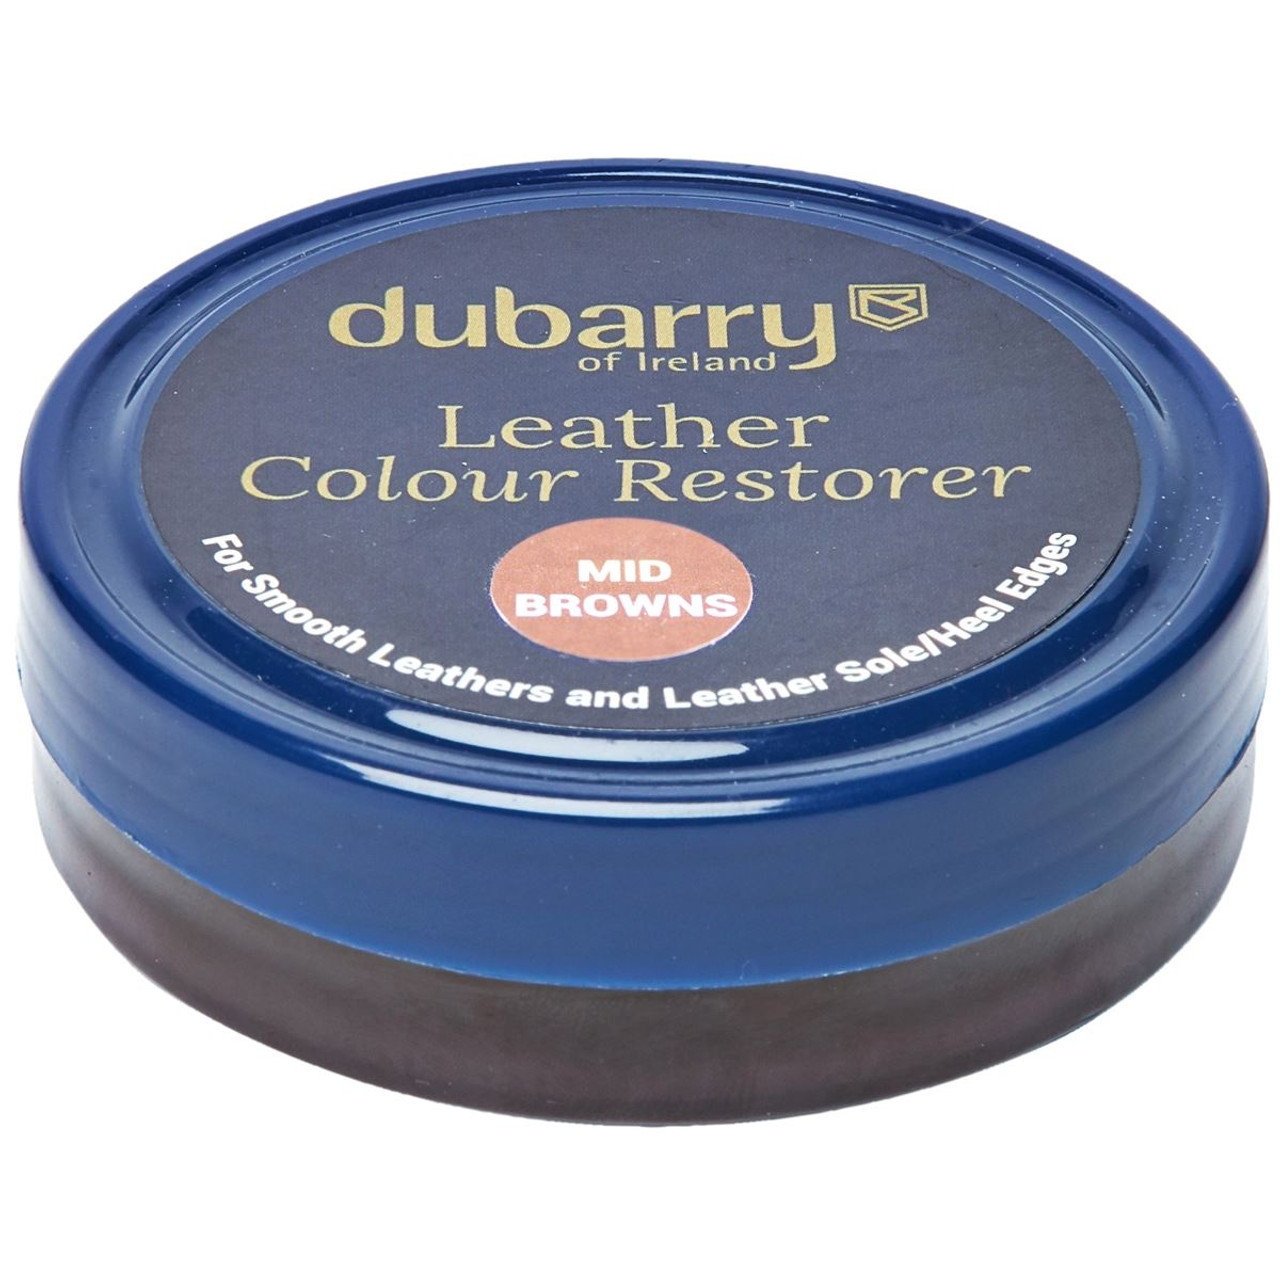 Dubarry Leather Colour Restorer Cream Mid Brown